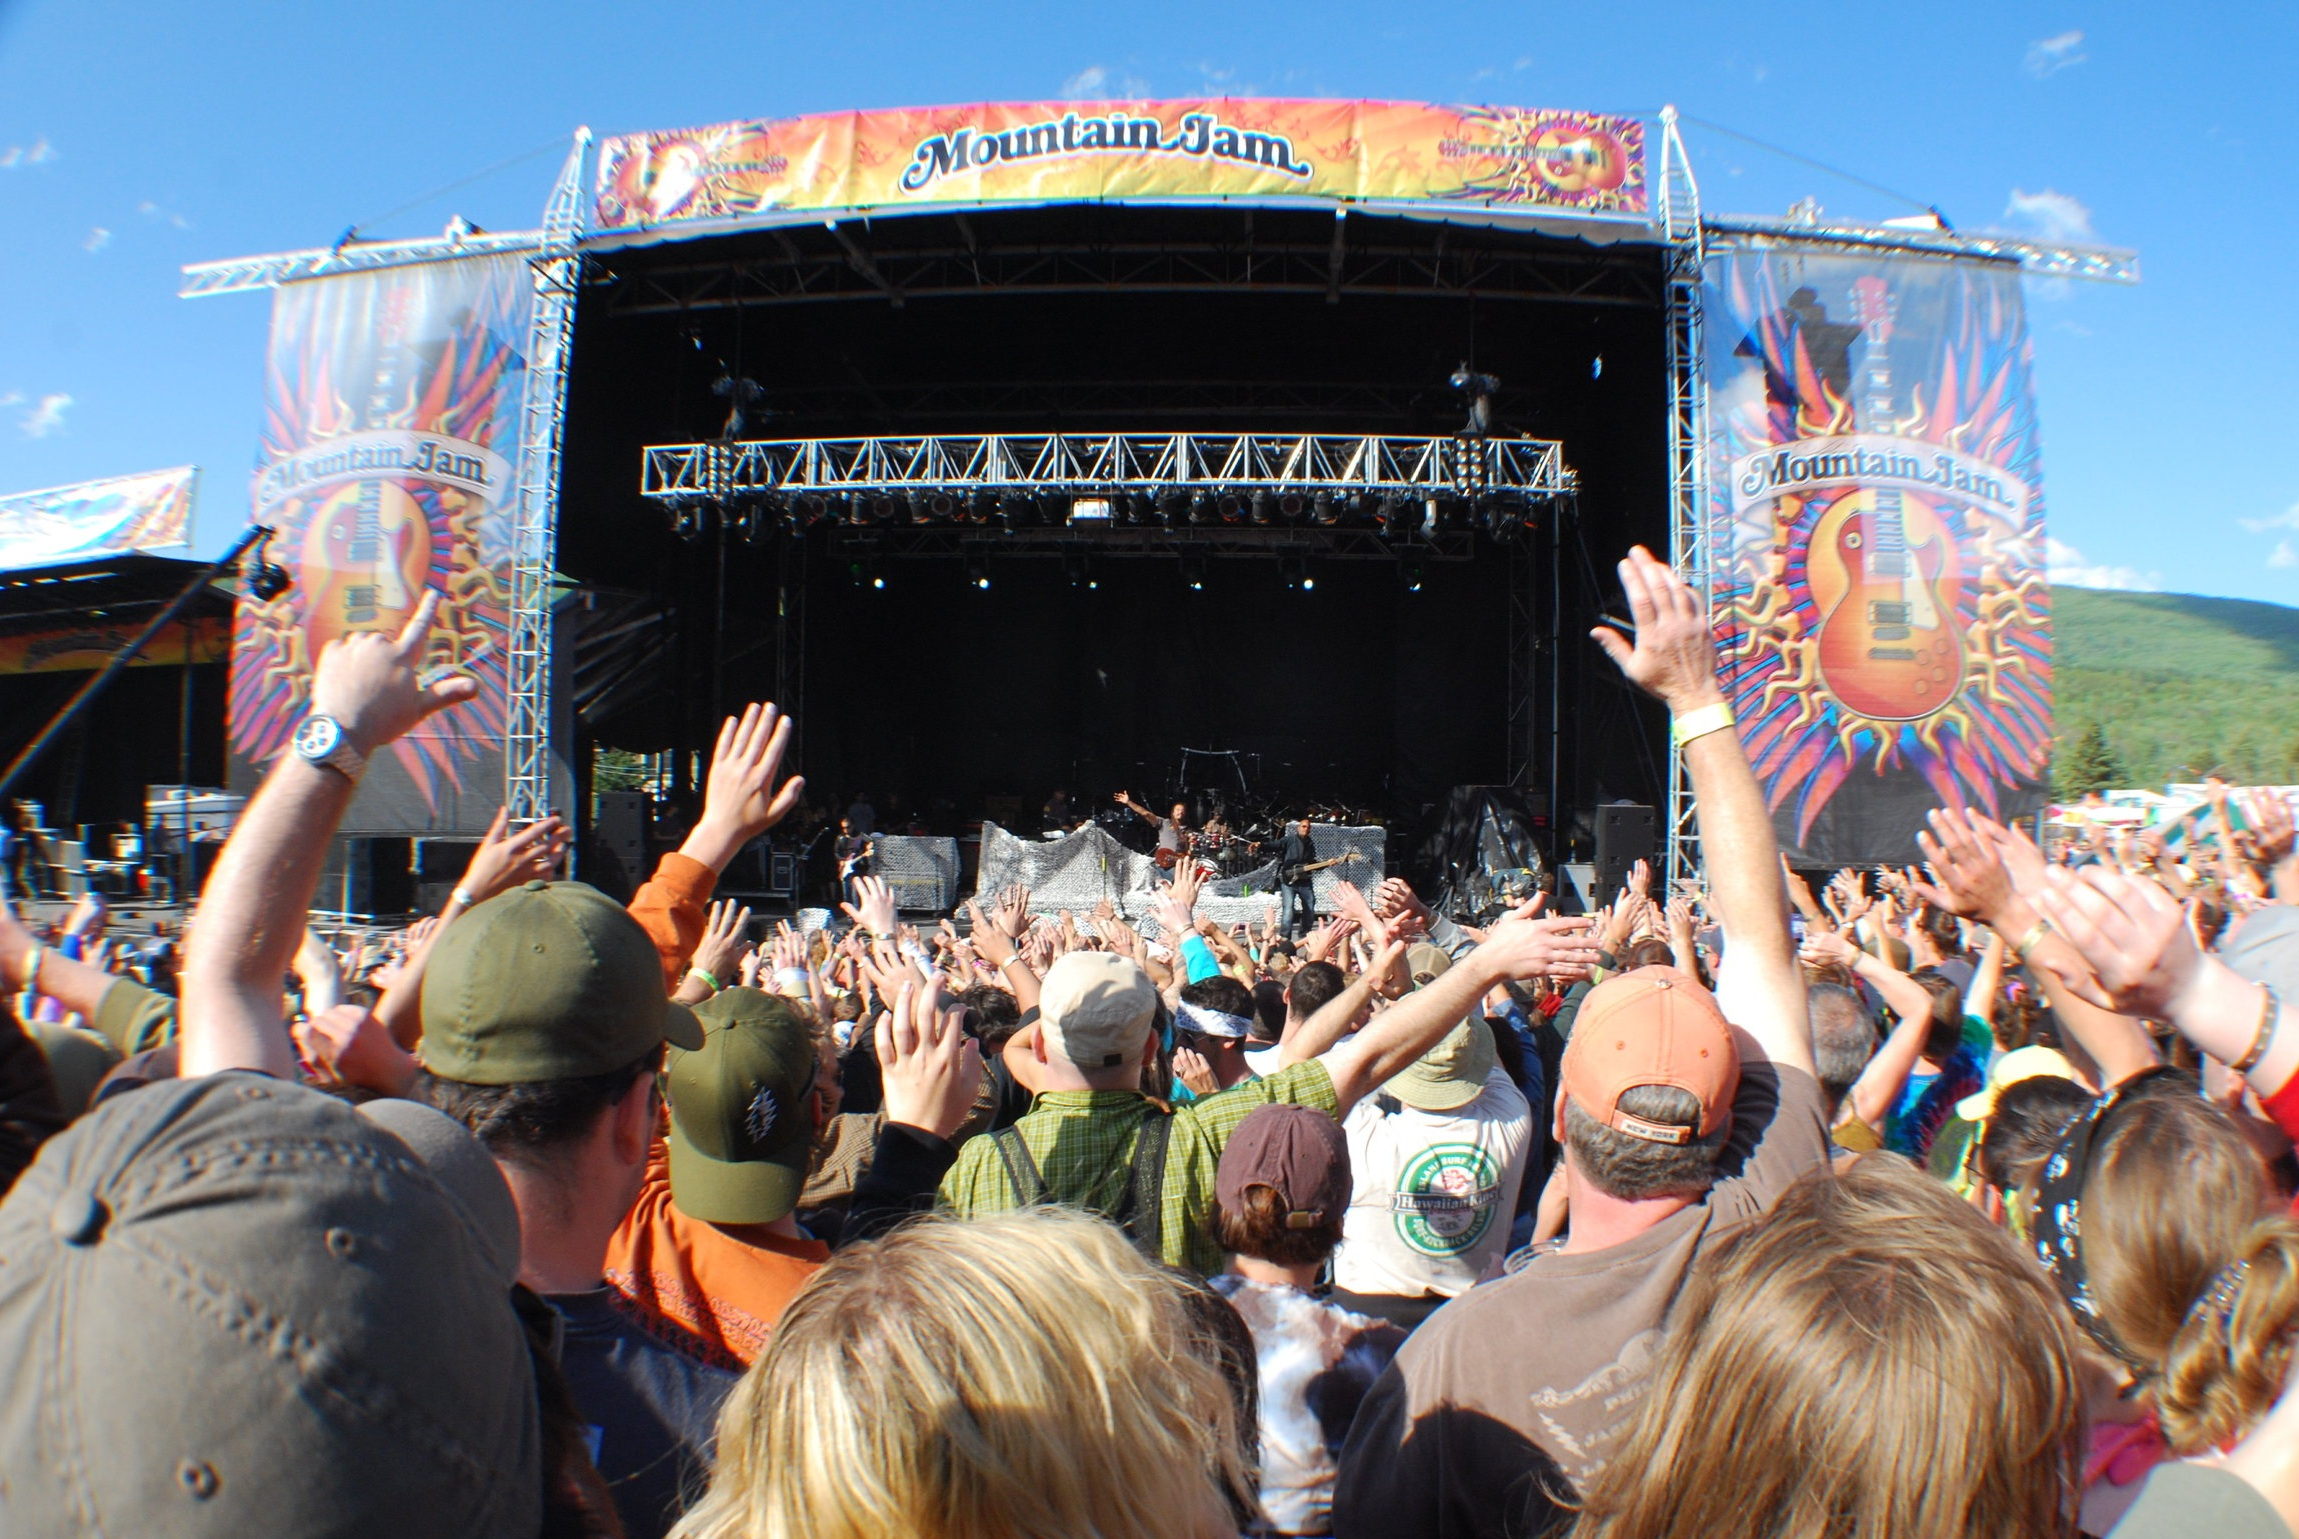 Mountain Jam heads to Bethel Woods this Thursday through Sunday with headliners including Willie Nelson, Gov't Mule, Phil Lesh and Friends and more. (Photo by Niki DeLawder)